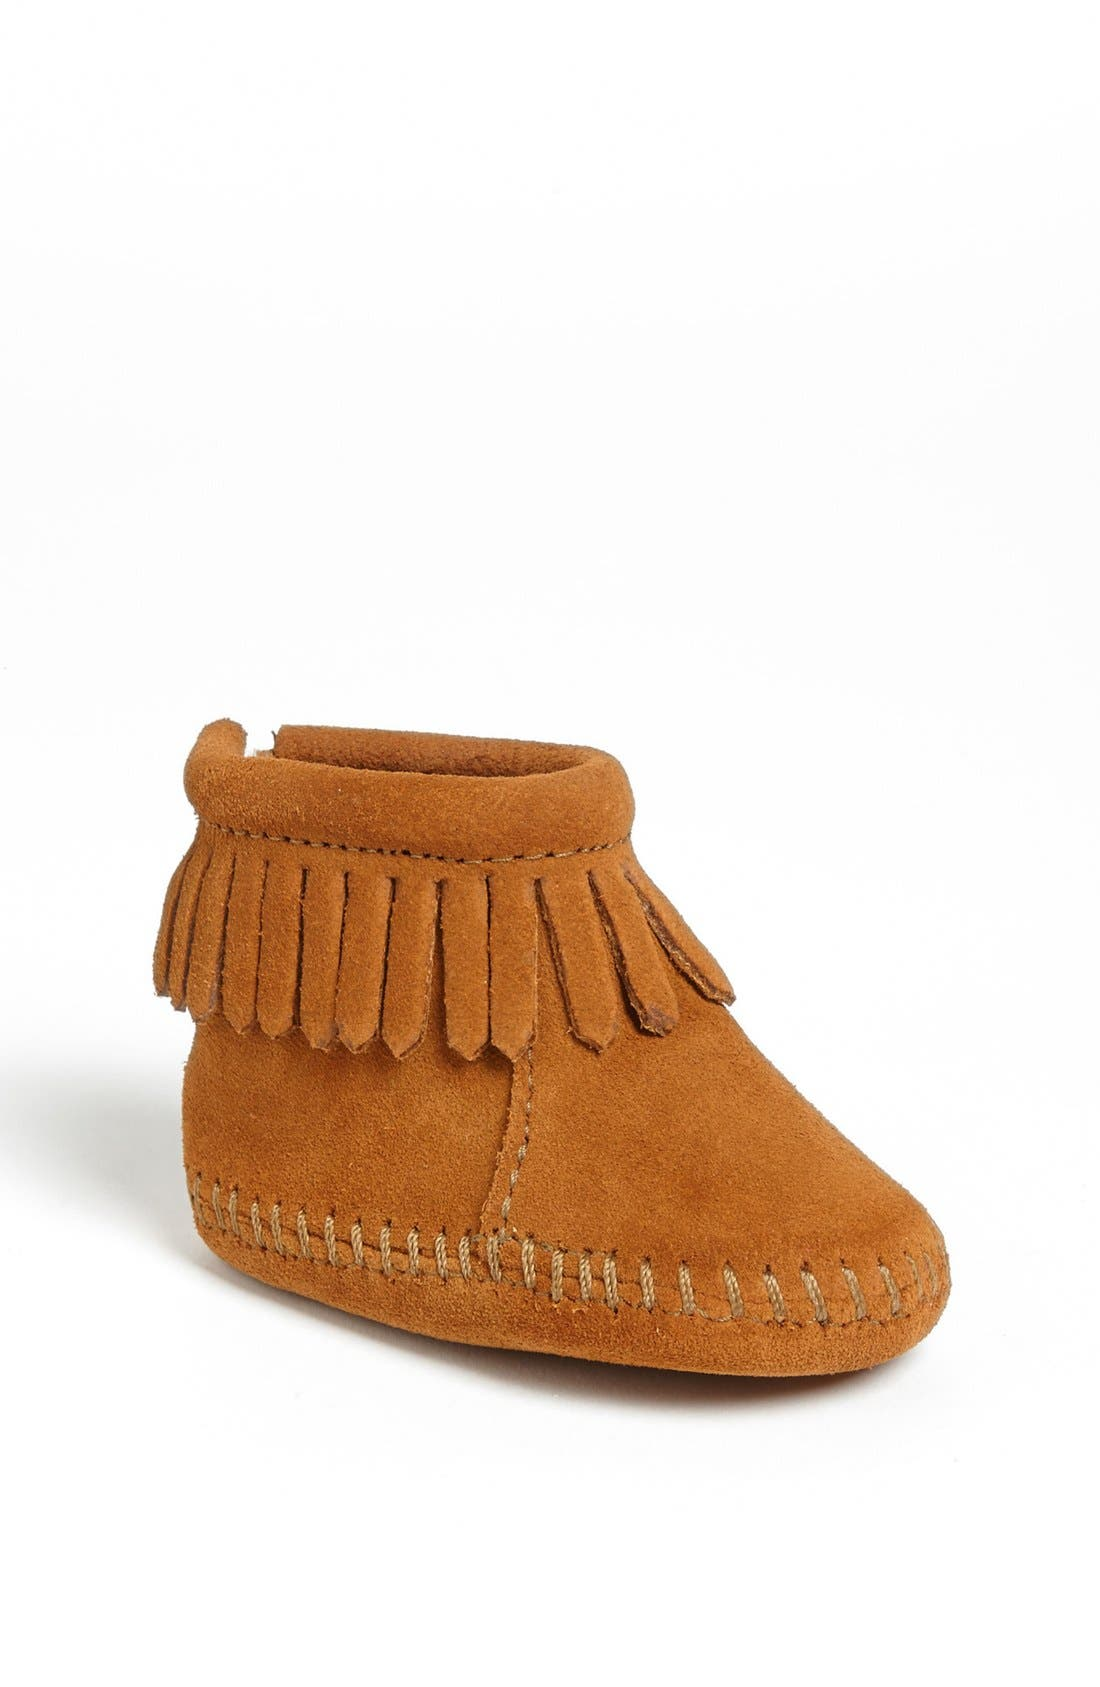 MINNETONKA Bootie, Main, color, BROWN